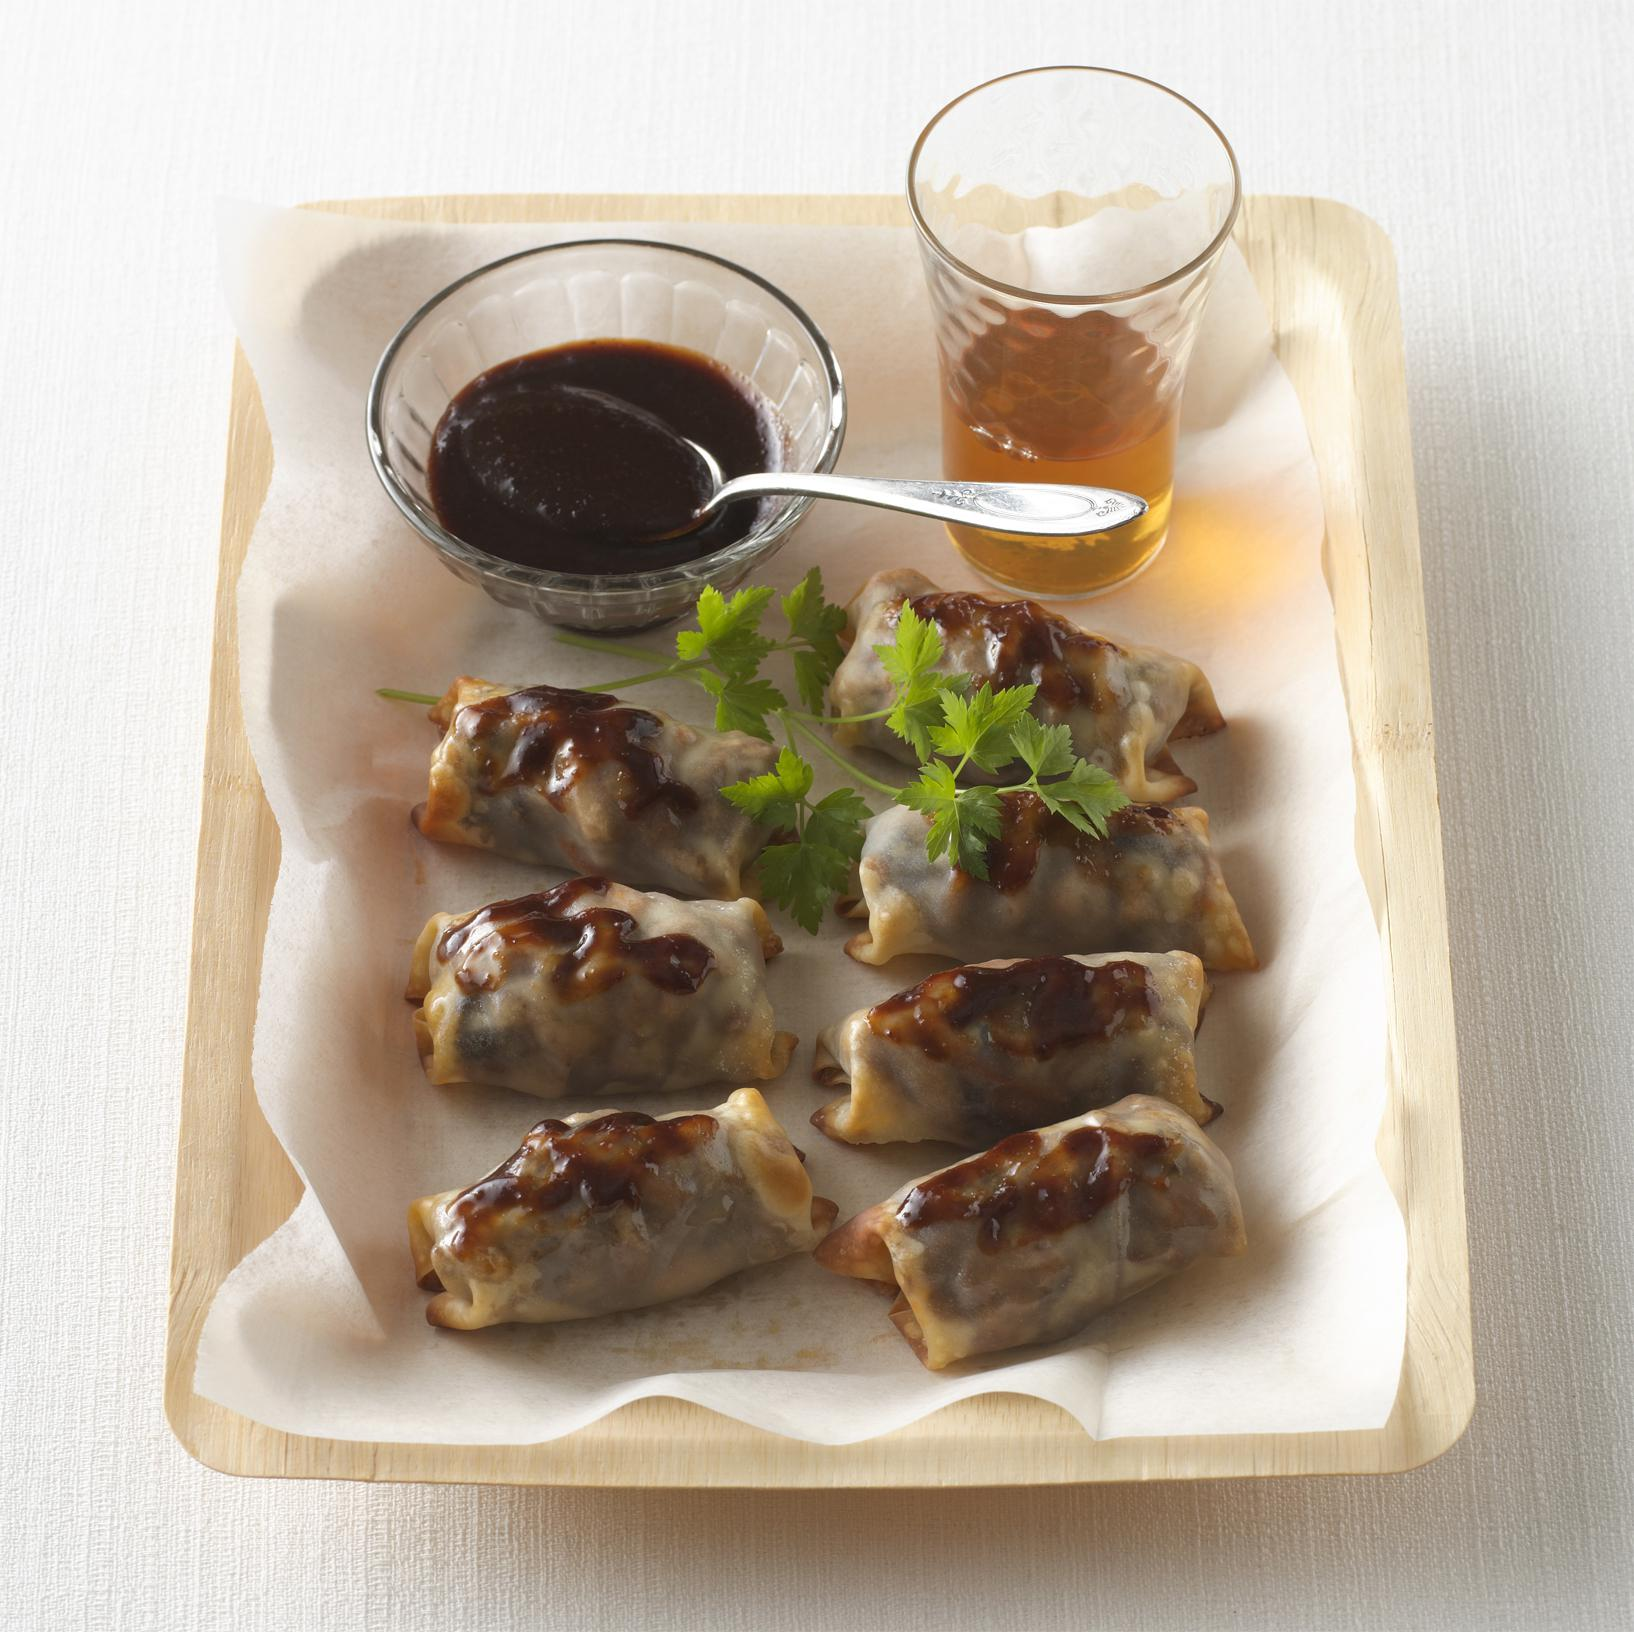 Mini Baked Crunchy Chicken Potstickers with Hoisin Dipping Sauce